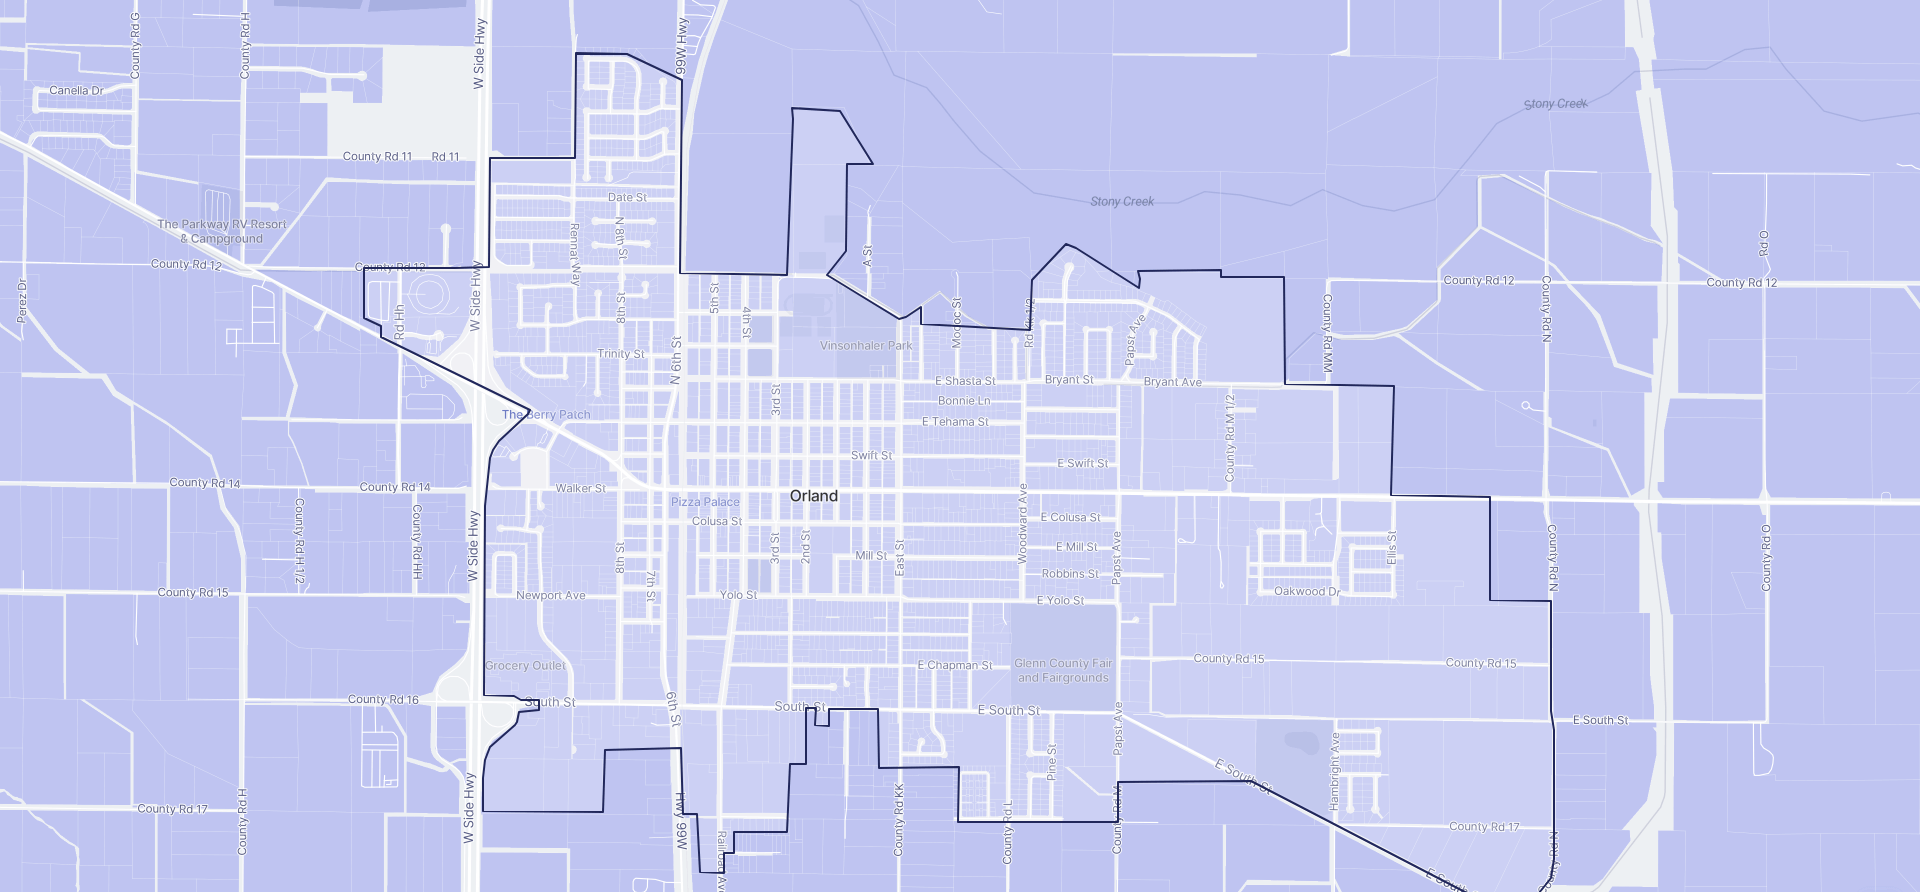 Image of Orland boundaries on a map.